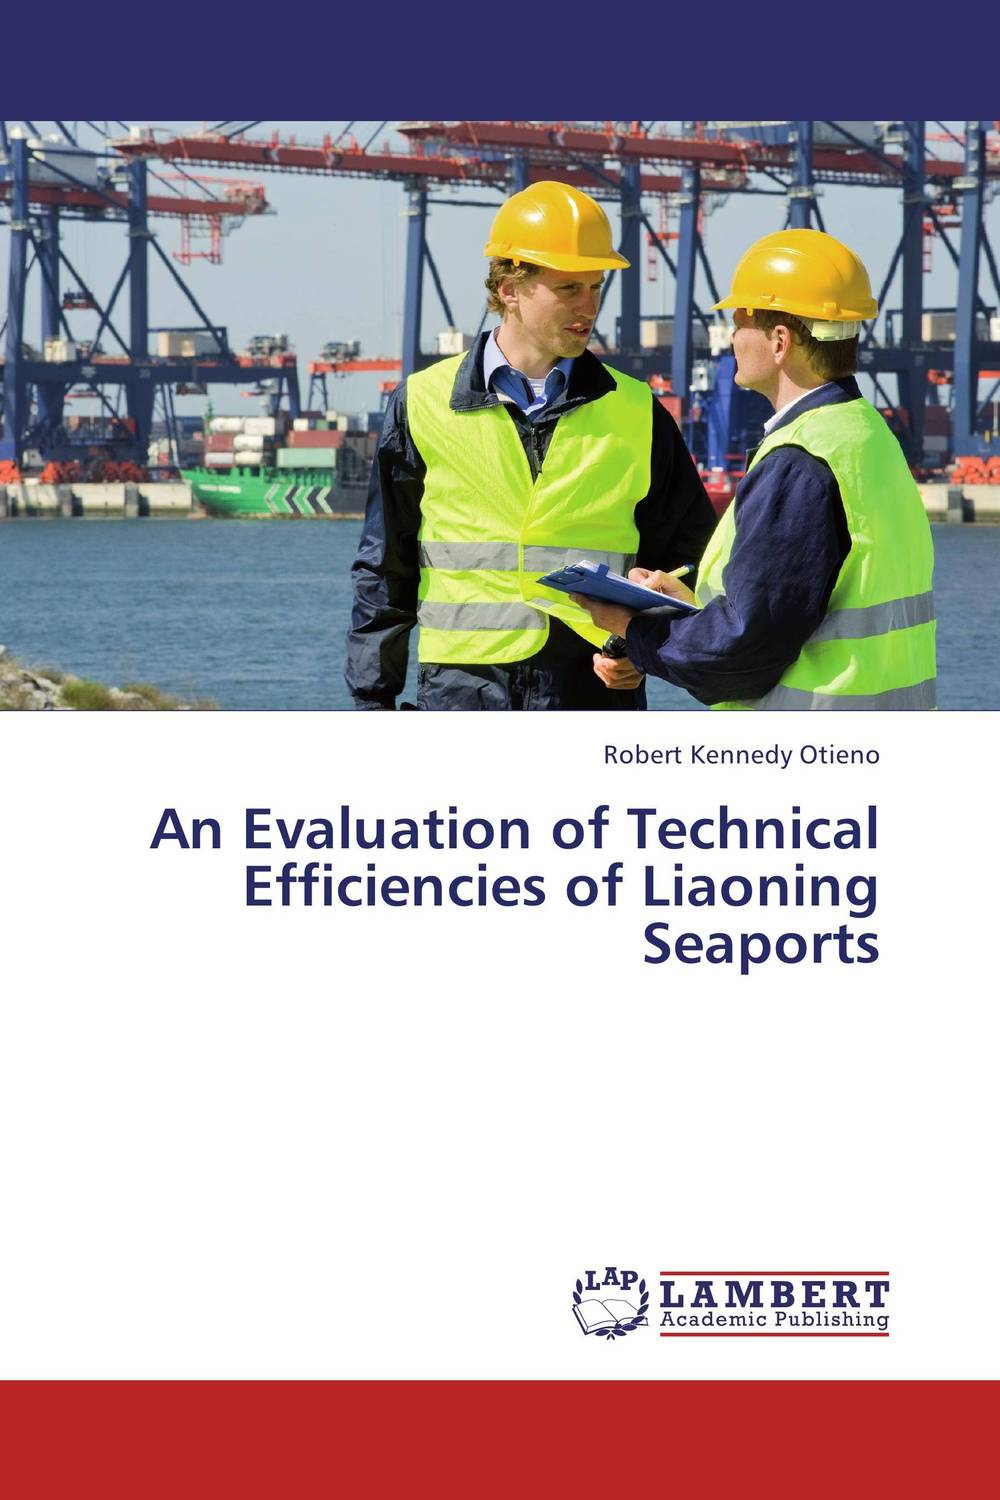 An Evaluation of Technical Efficiencies of Liaoning Seaports empirical evaluation of operational efficiency of major ports in india